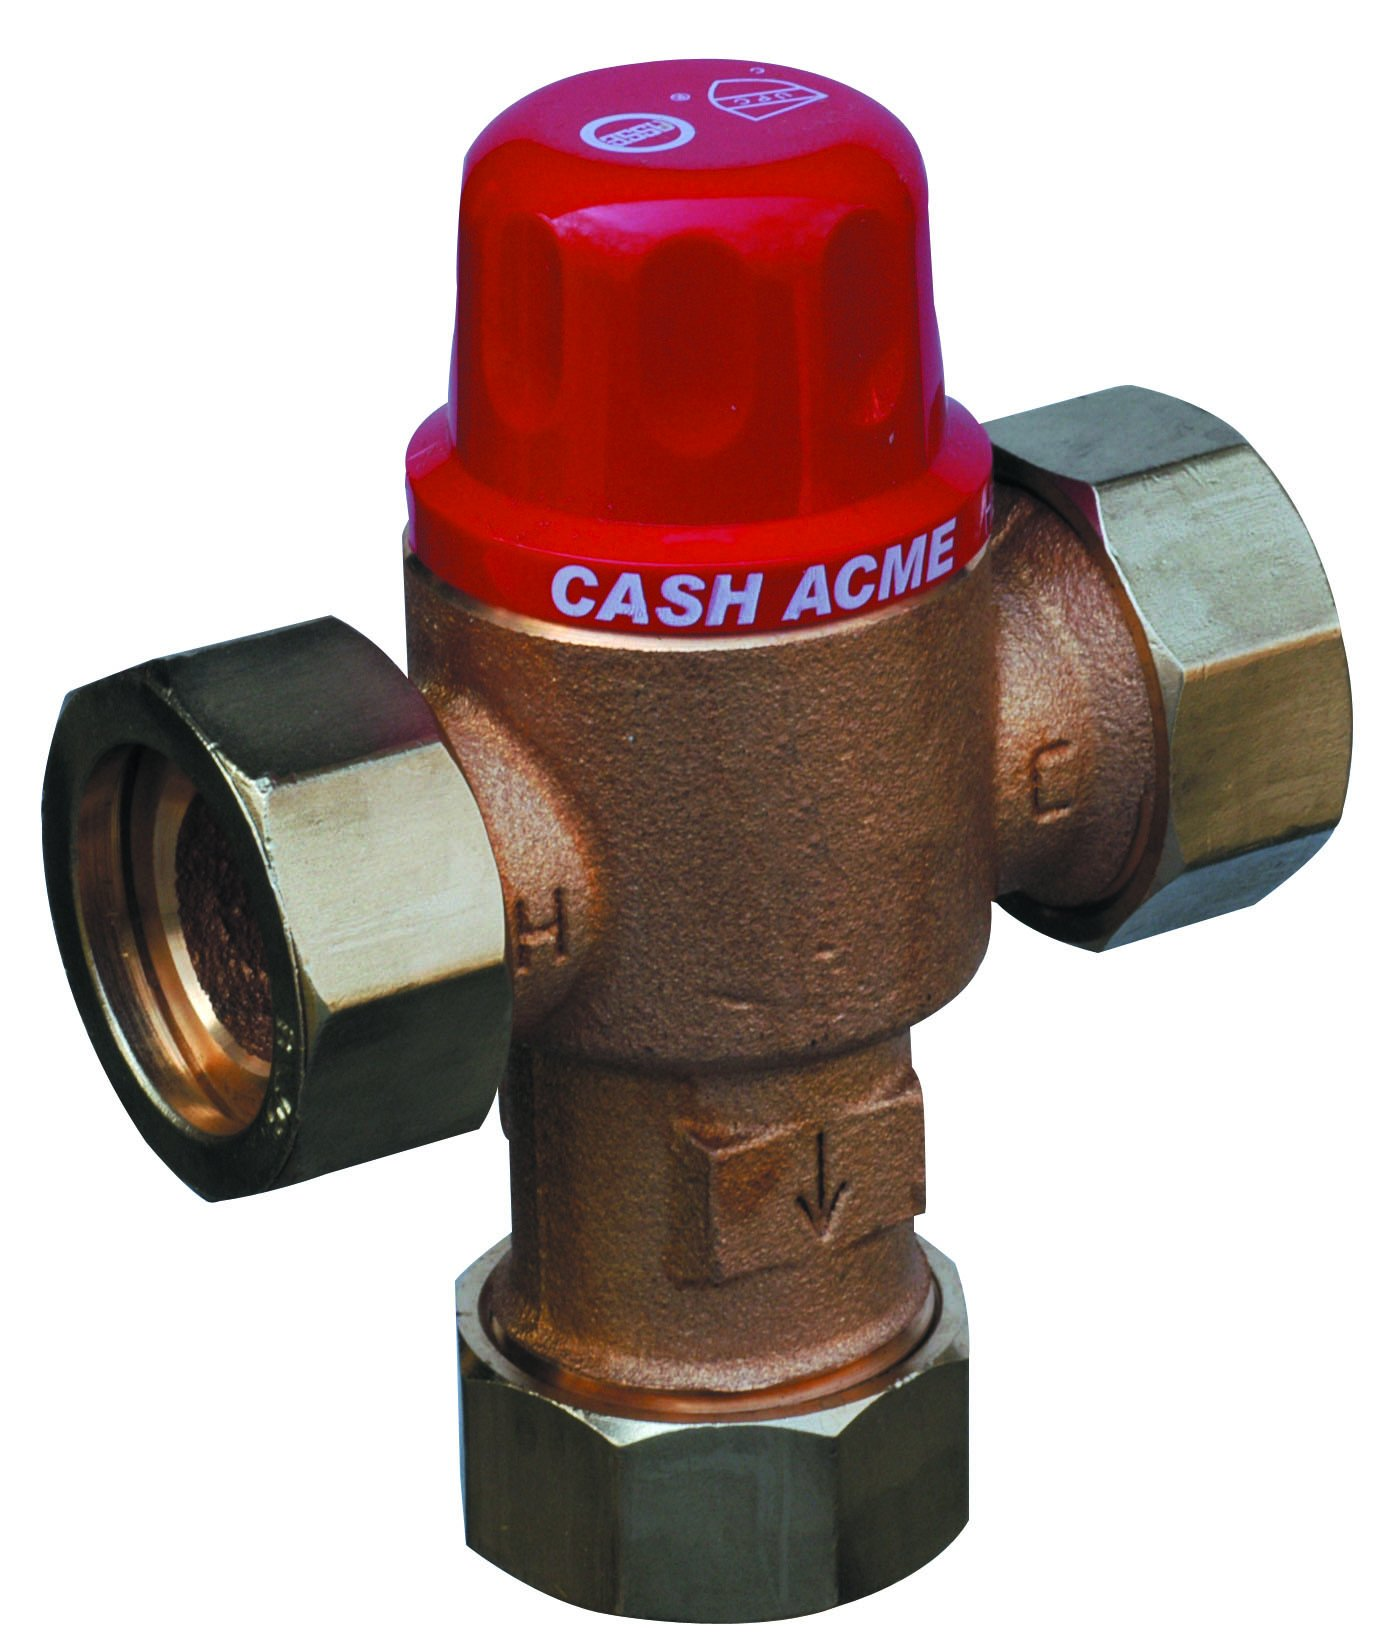 Cash Acme 24518 HG110-HX 3/4-Inch Threaded NPT Connections and Integral Checks